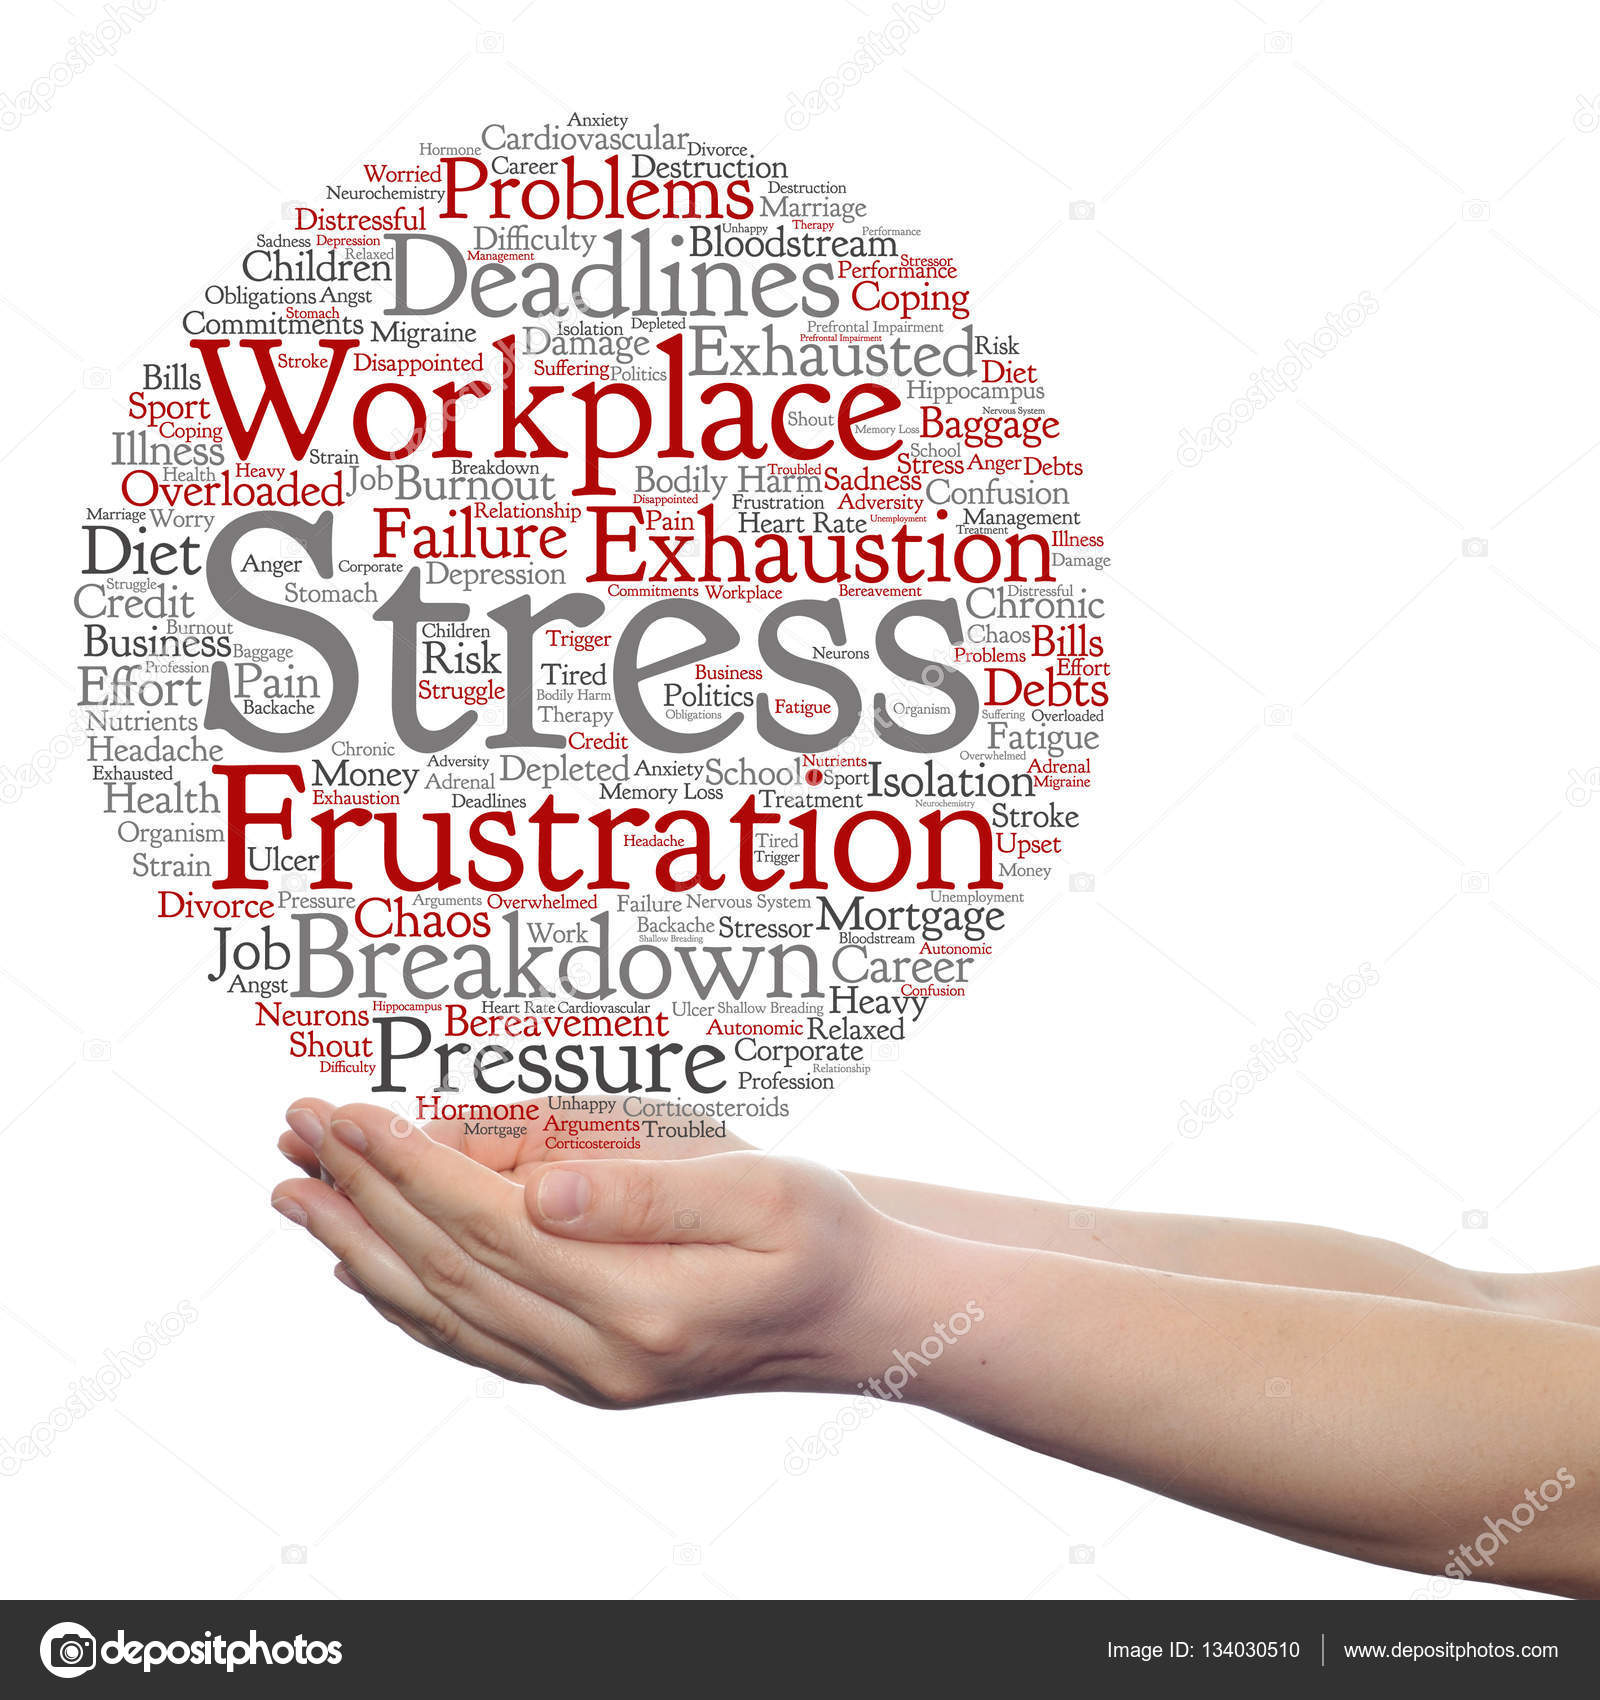 depositphotos_134030510-stock-photo-mental-stress-word-cloud-in.jpg